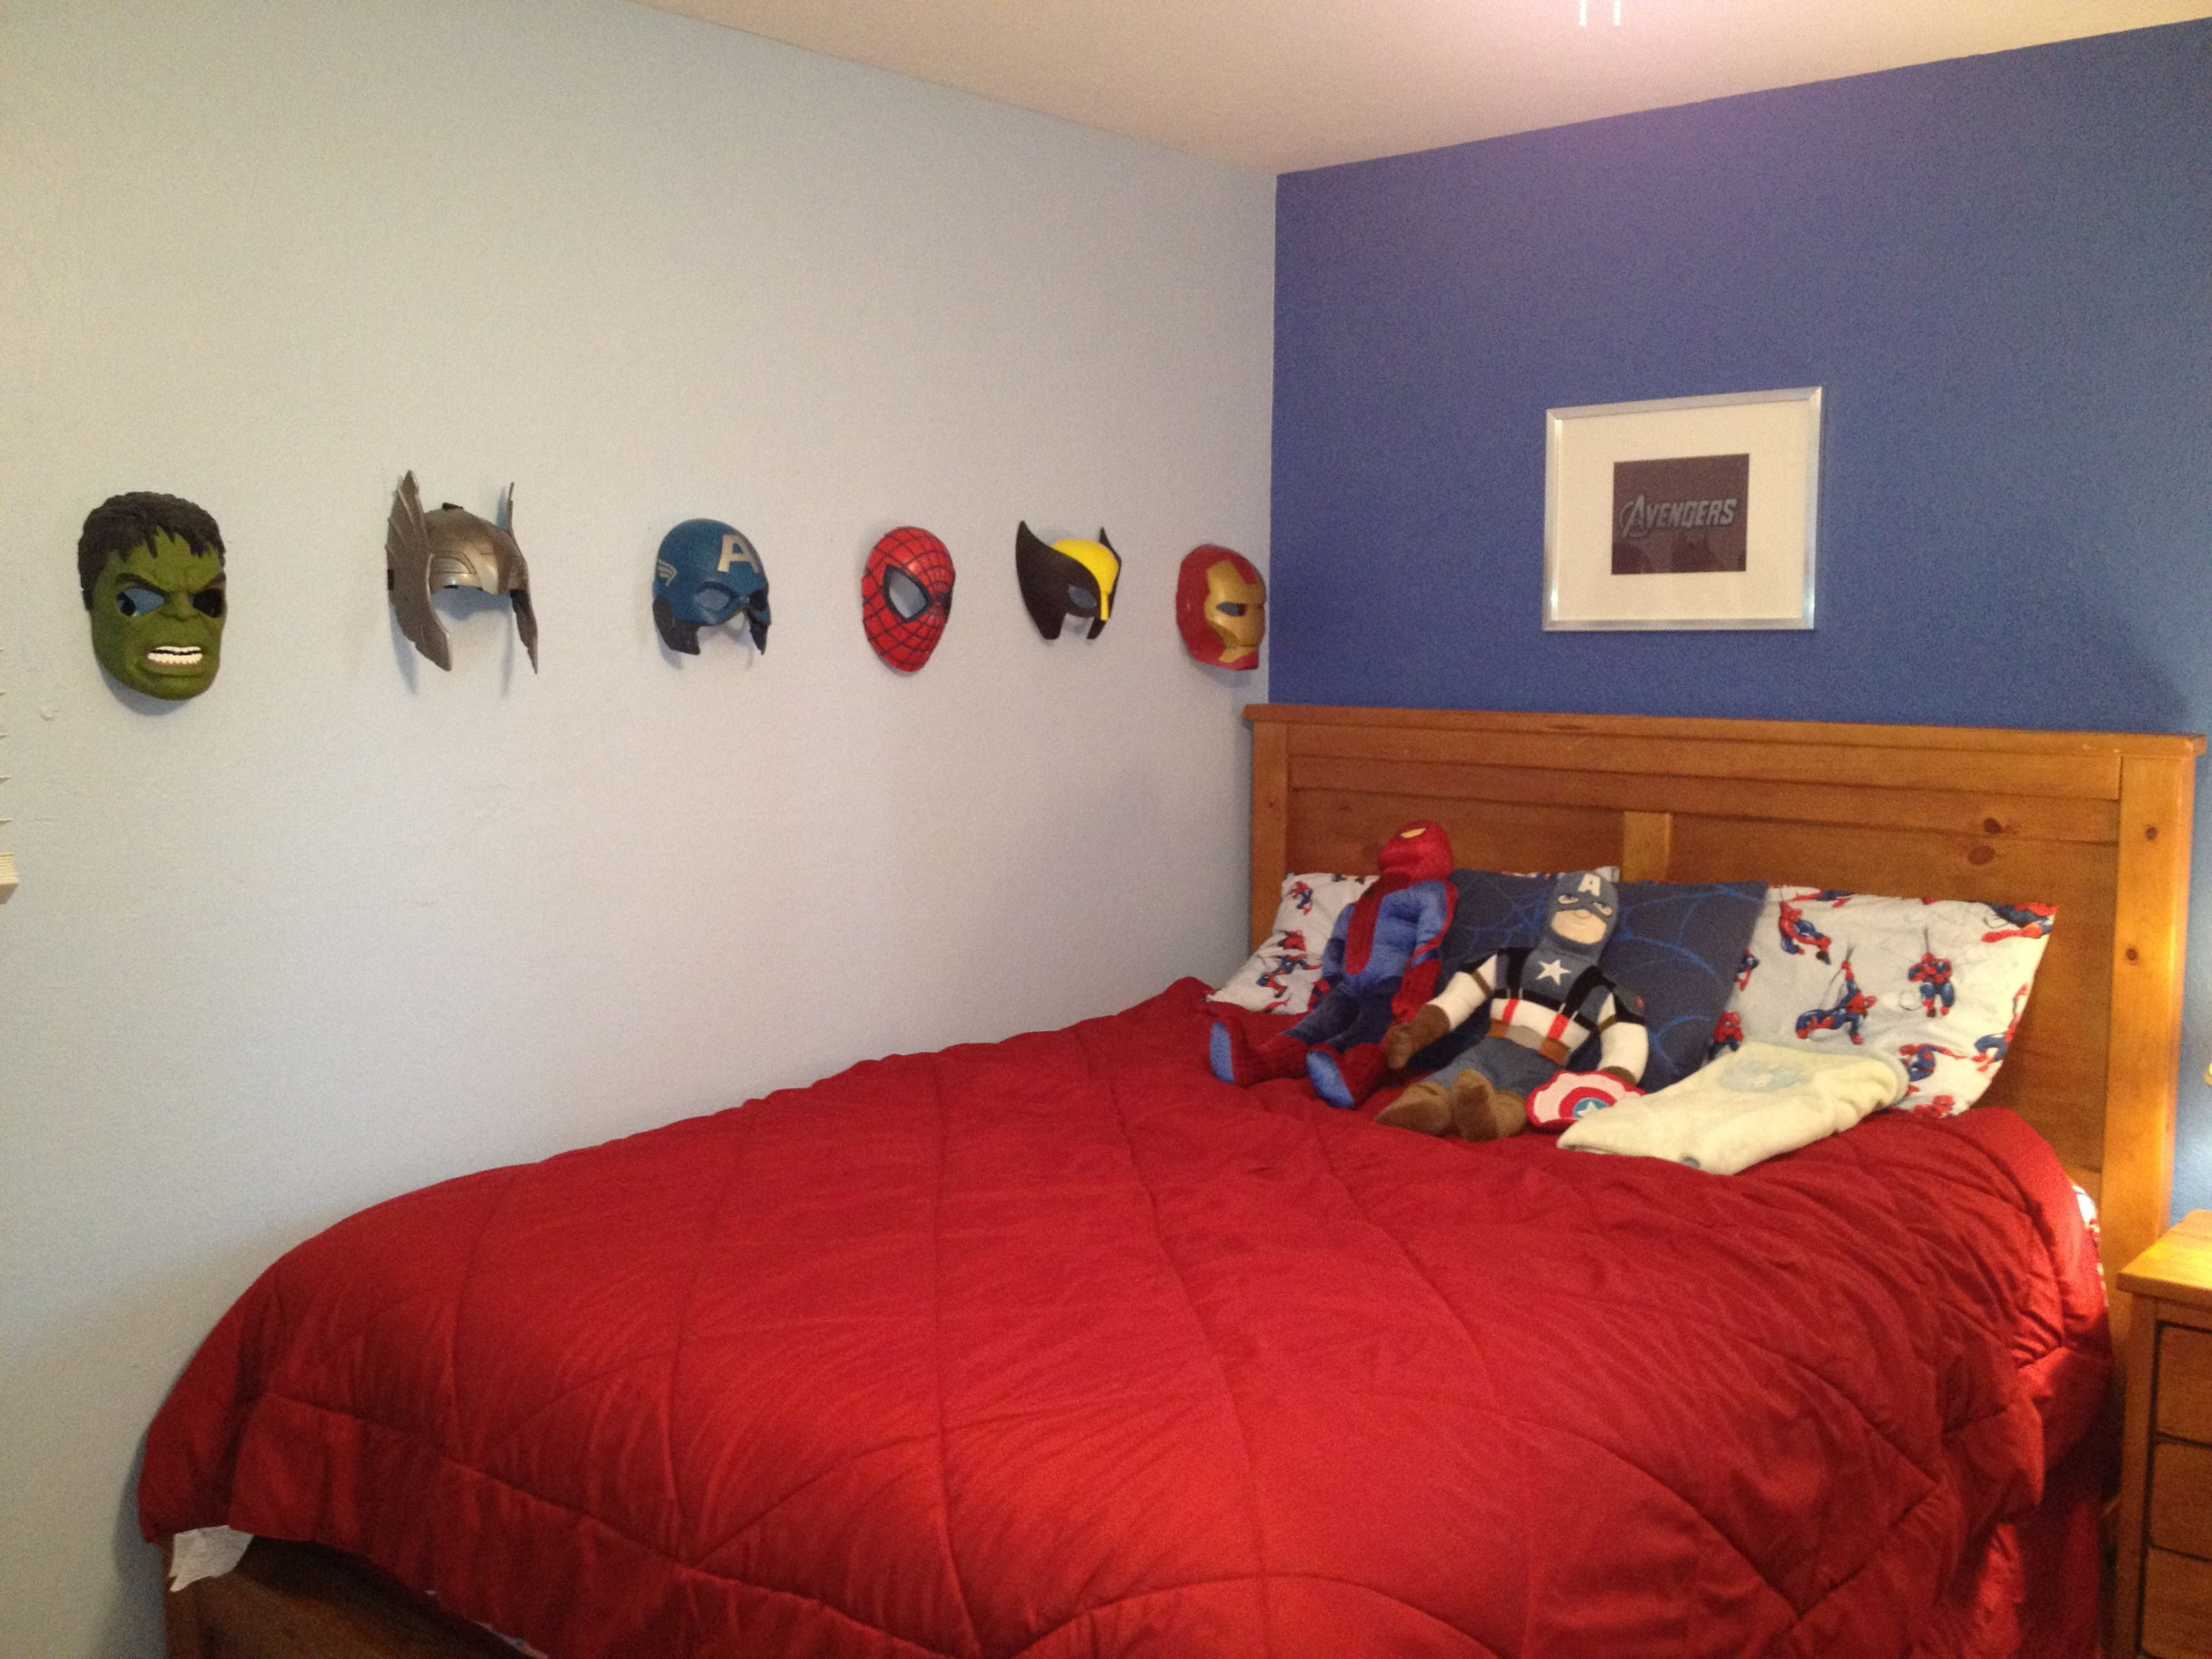 Elegant Avengeru0027s Boys Bedroom. Use Masks As Decoration By Hanging On Hooks. Frame  Comic Books